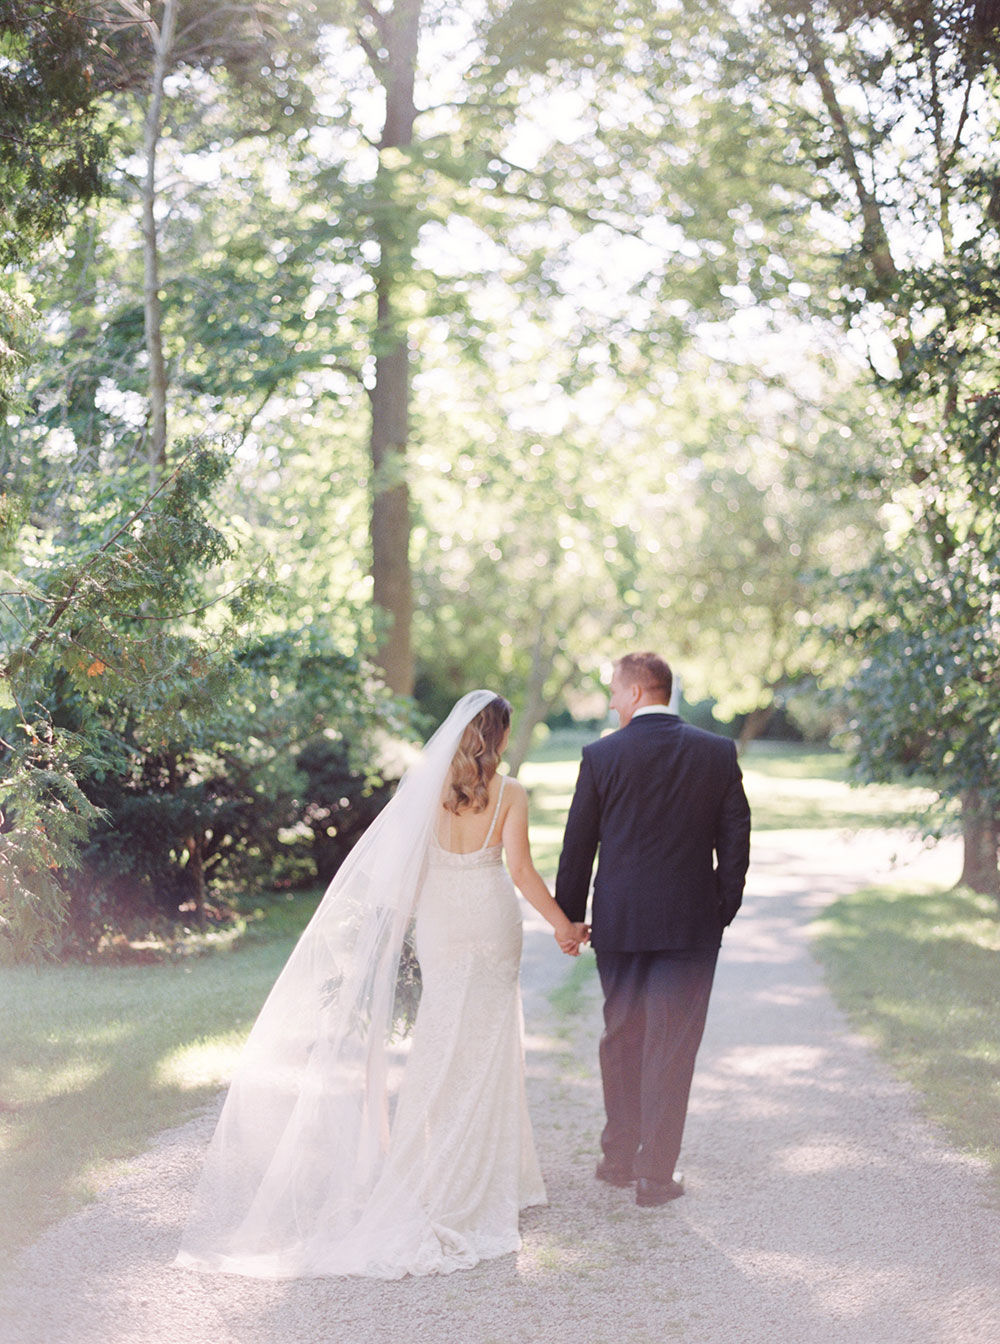 kurtz-orchards-wedding-gracewood-estate-niagara-on-the-lake-photo-by-katie-nicolle-photography-0064.JPG